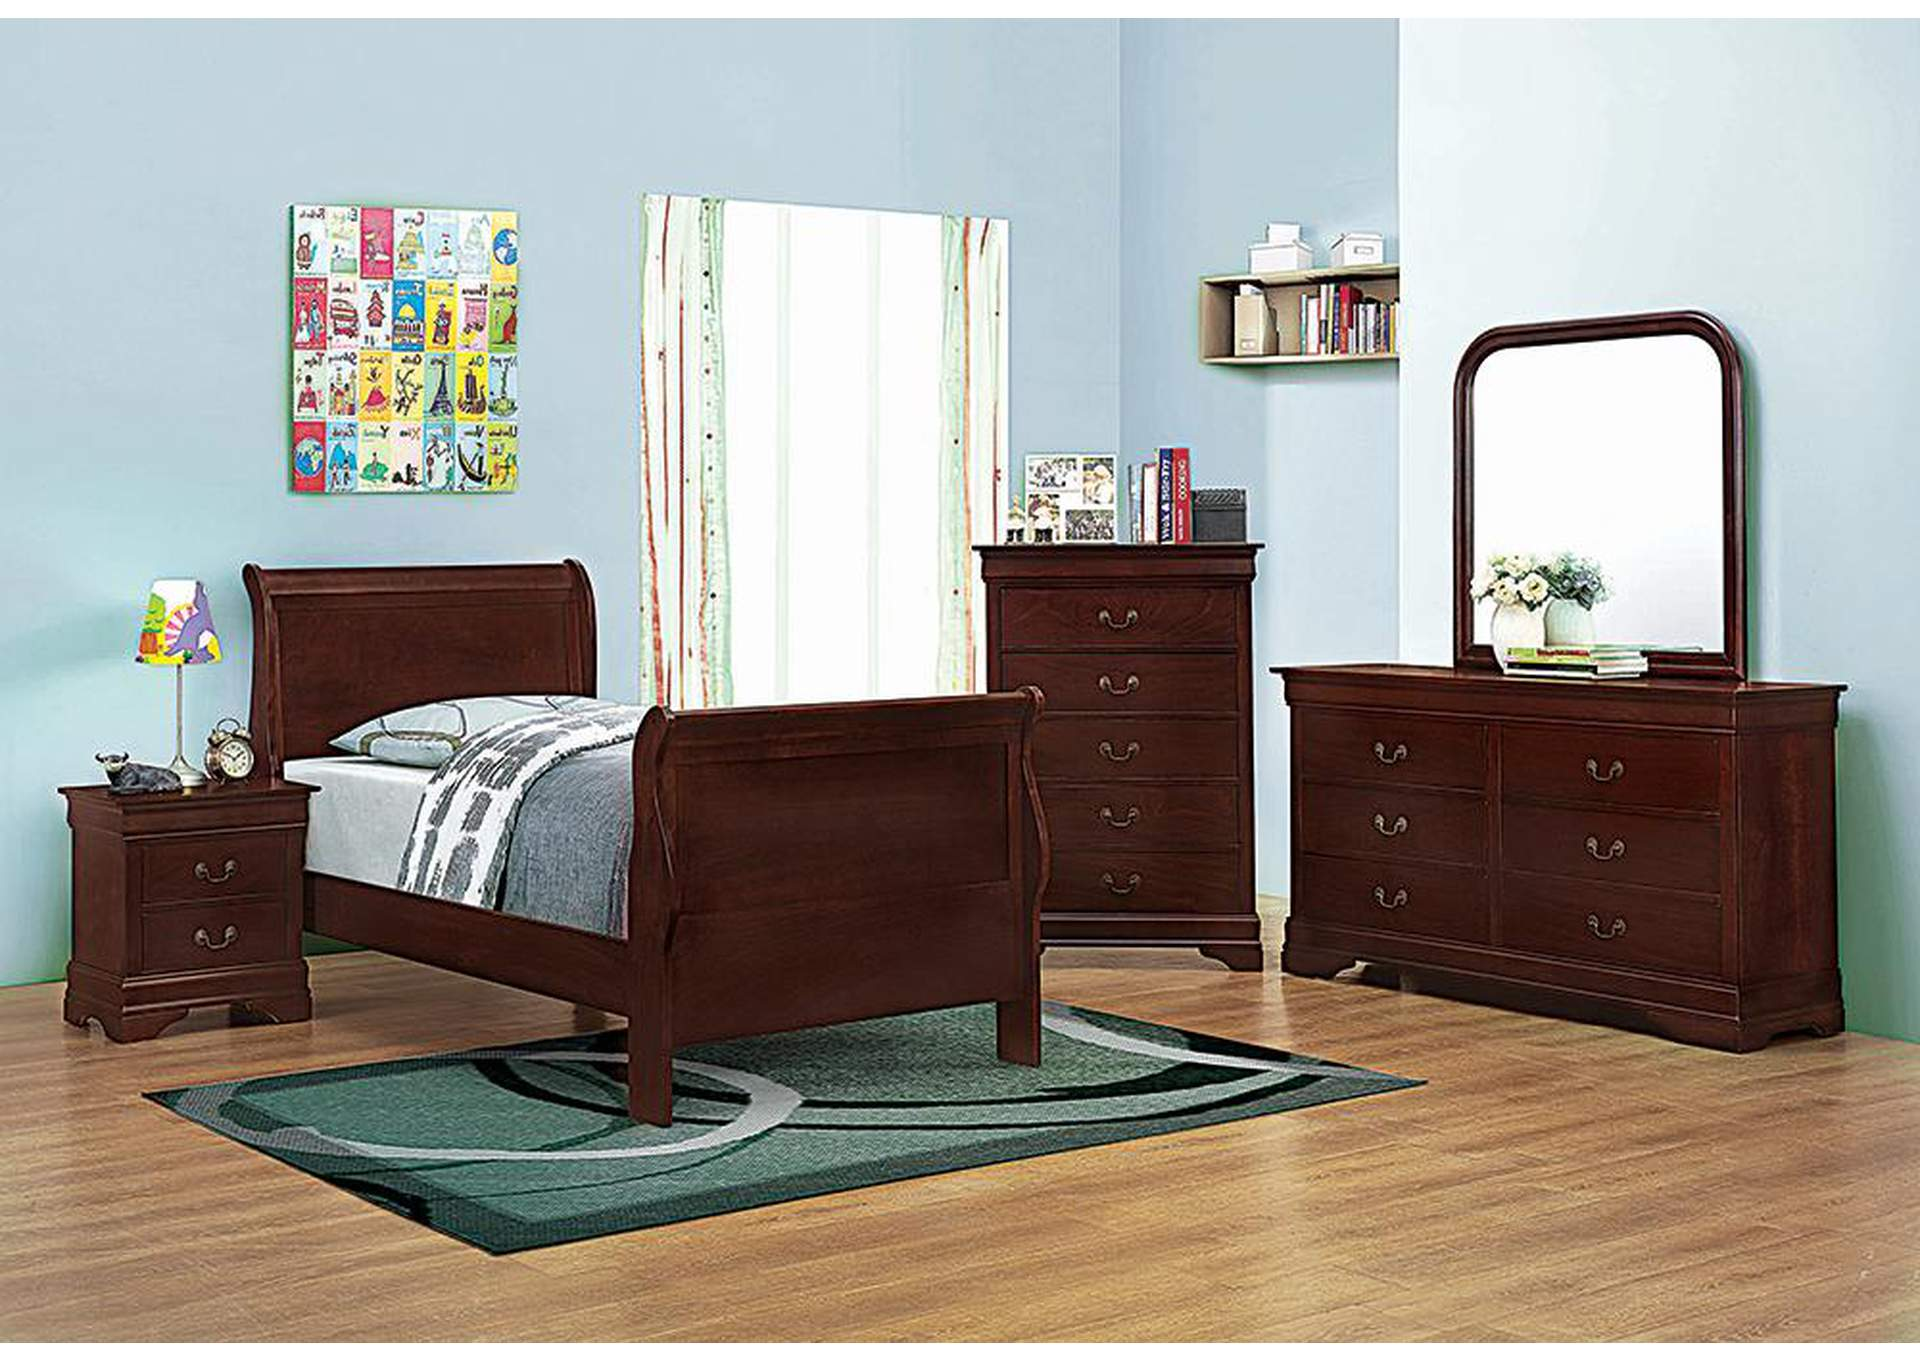 Cherry Twin Bed,Coaster Furniture